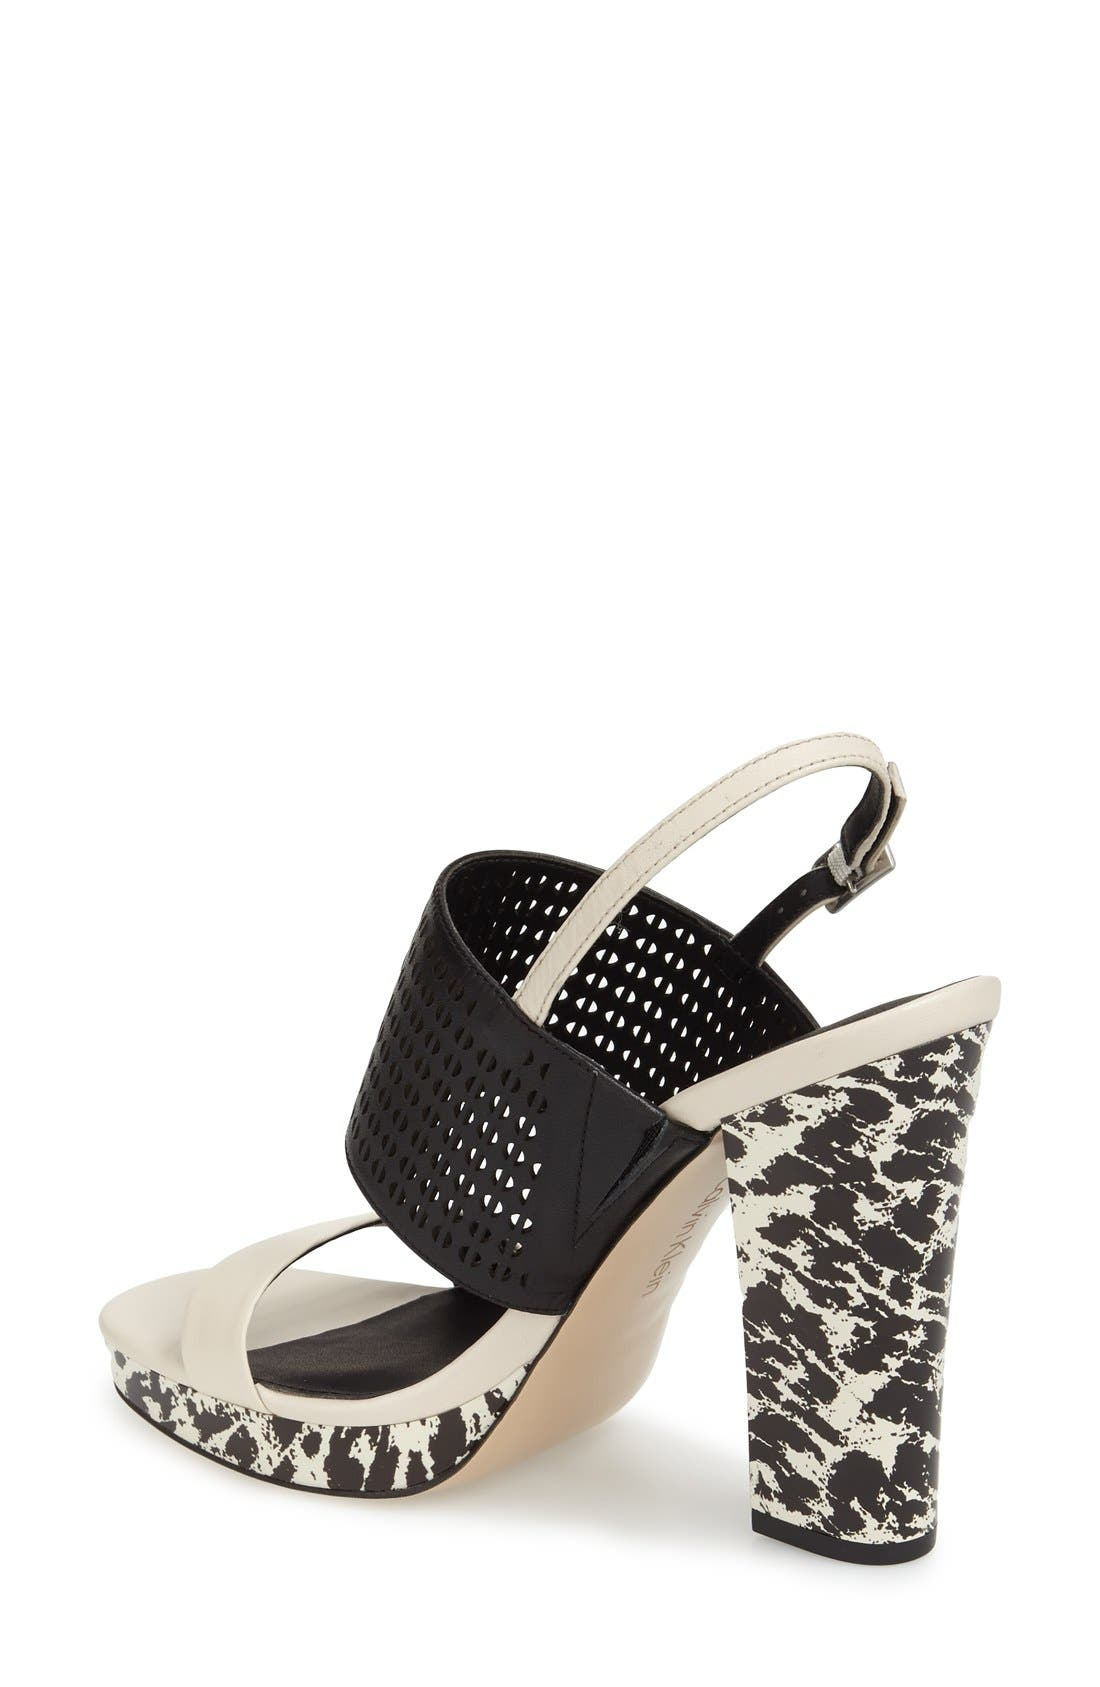 'Breannie' Slingback Platform Sandal,                             Alternate thumbnail 3, color,                             900